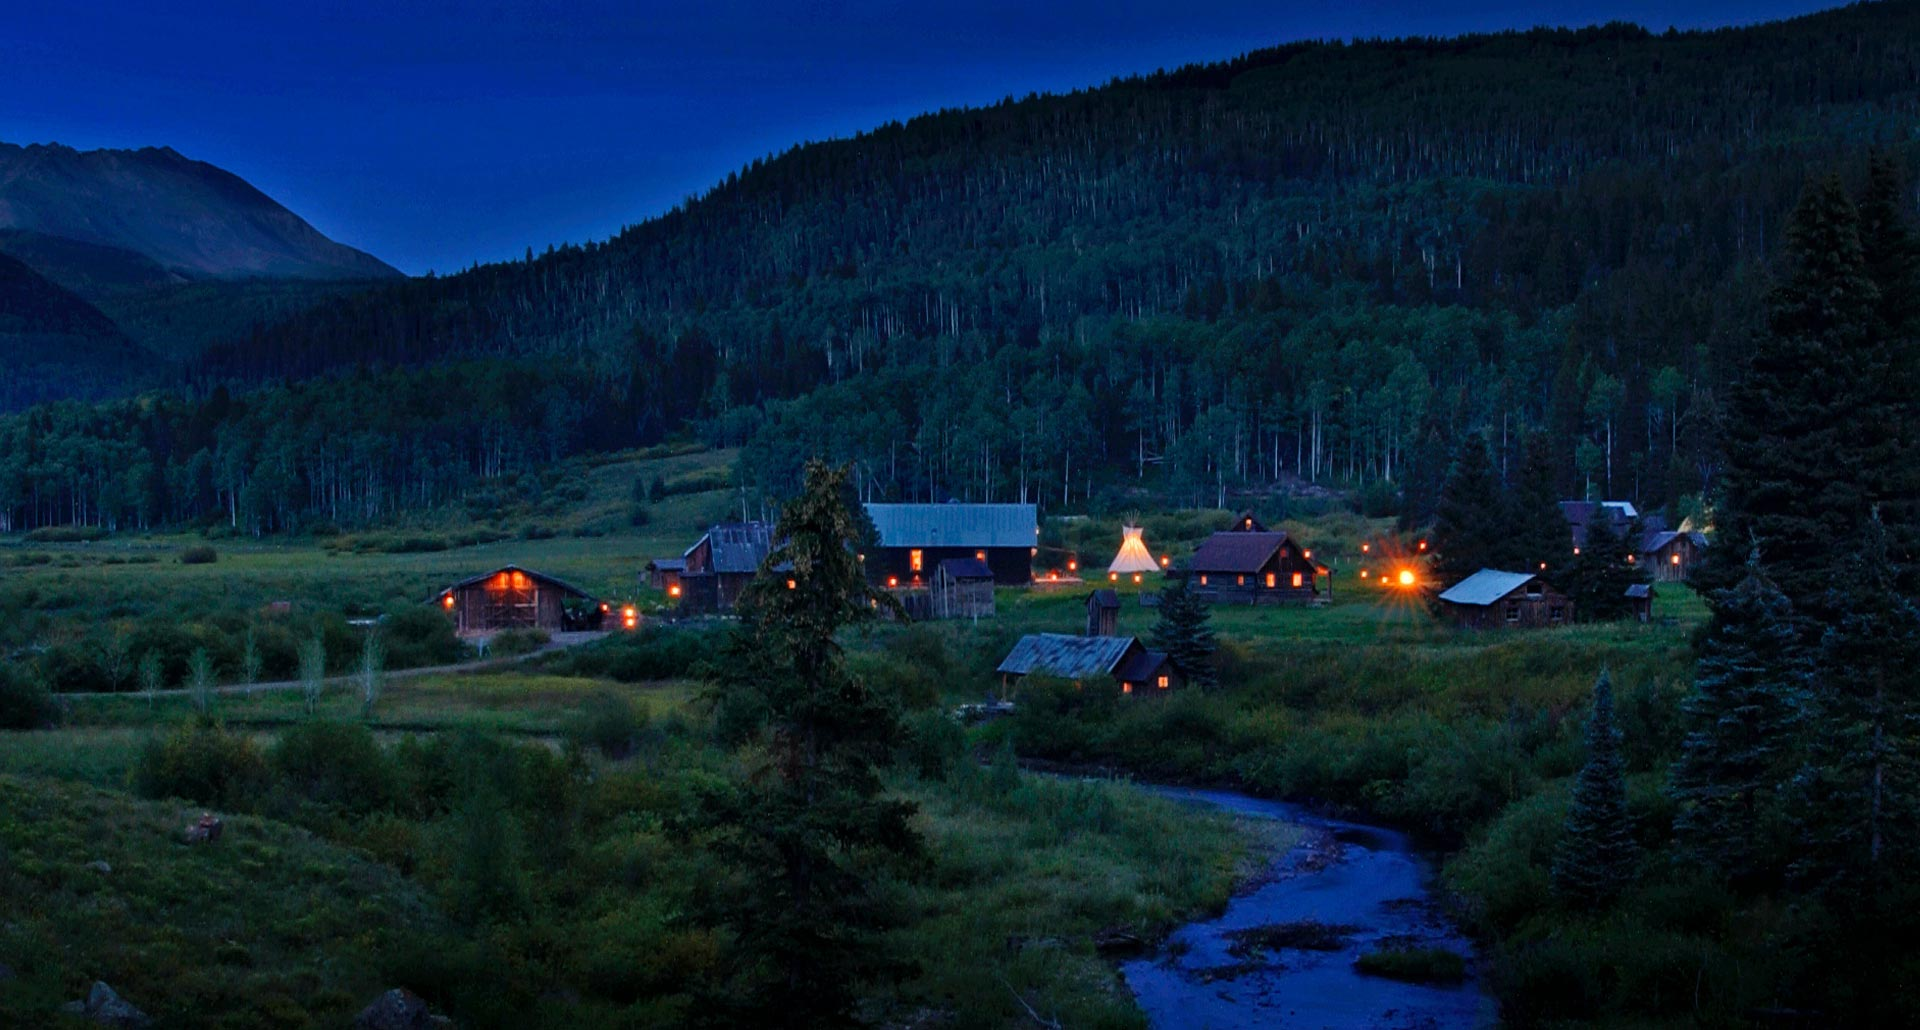 Dunton Hot Springs - boutique hotel & resort in Dolores, Colorado